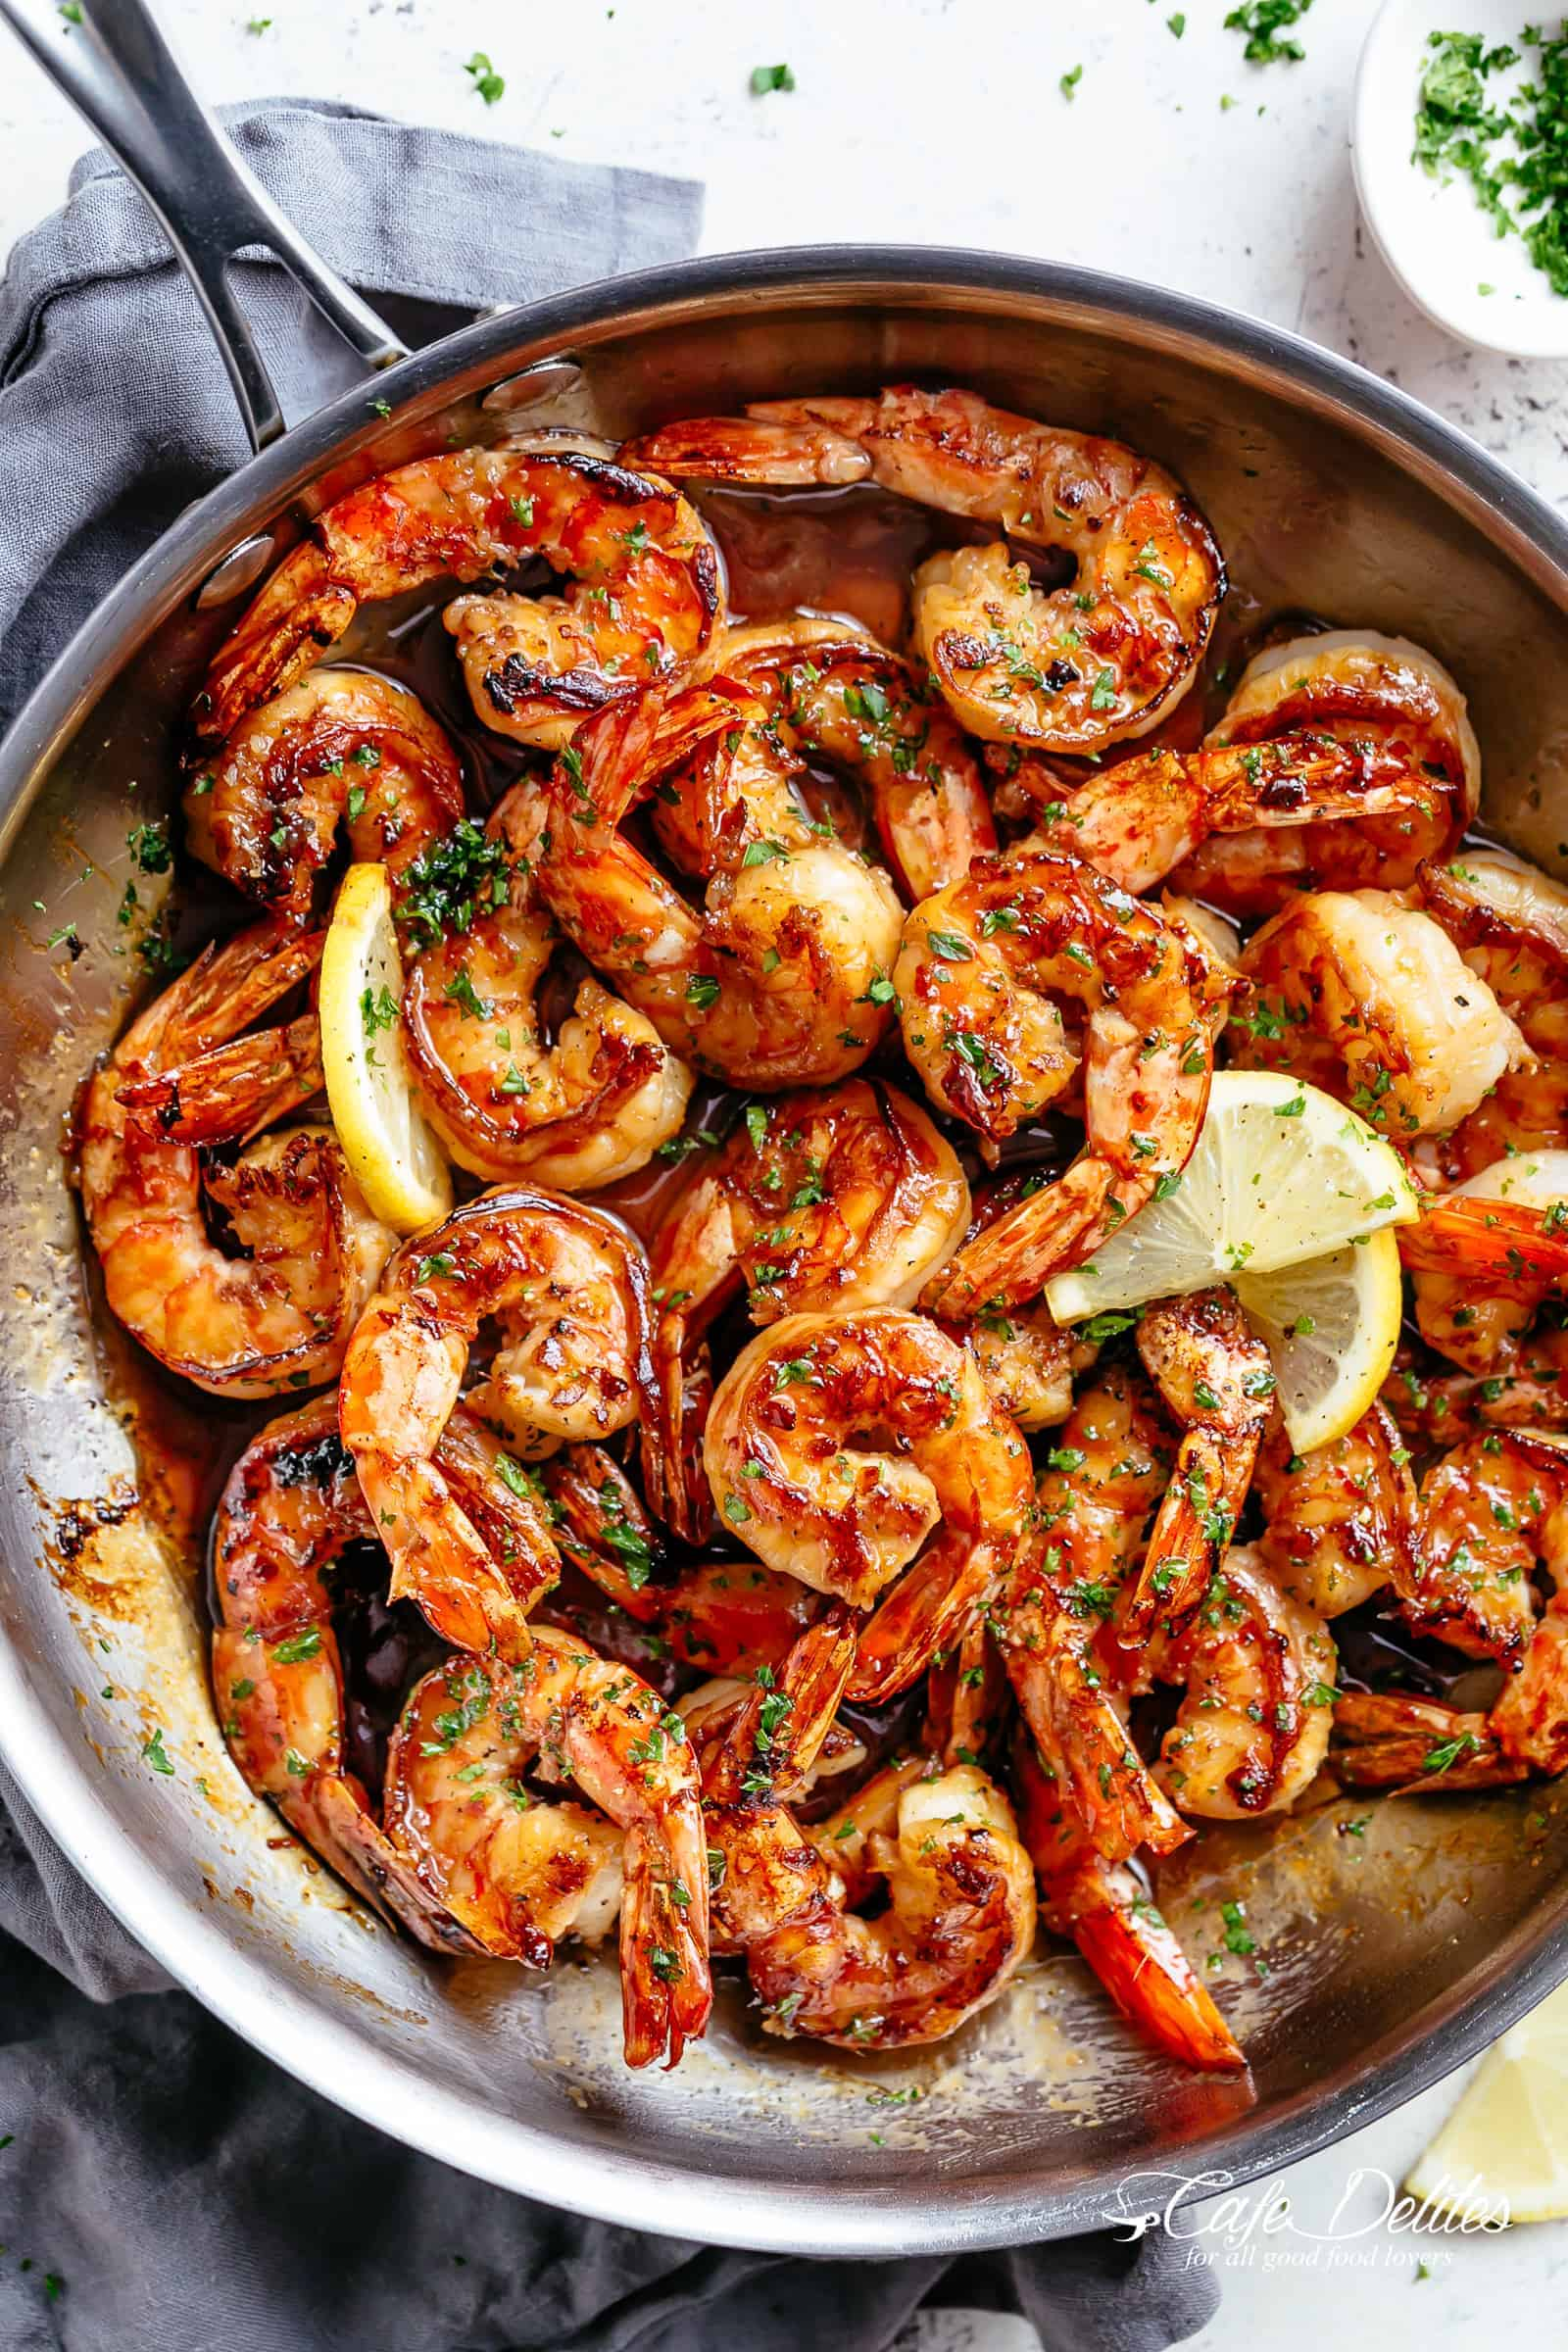 Seared Buttery Honey Garlic Shrimp coated in the best honey garlic butter sauce is a quick and simple shrimp recipe guaranteed to impress! This is the best shrimp recipe to hit your dinner table! Restaurant quality flavour ready in less than 10 minutes! No marinading needed! | cafedelites.com